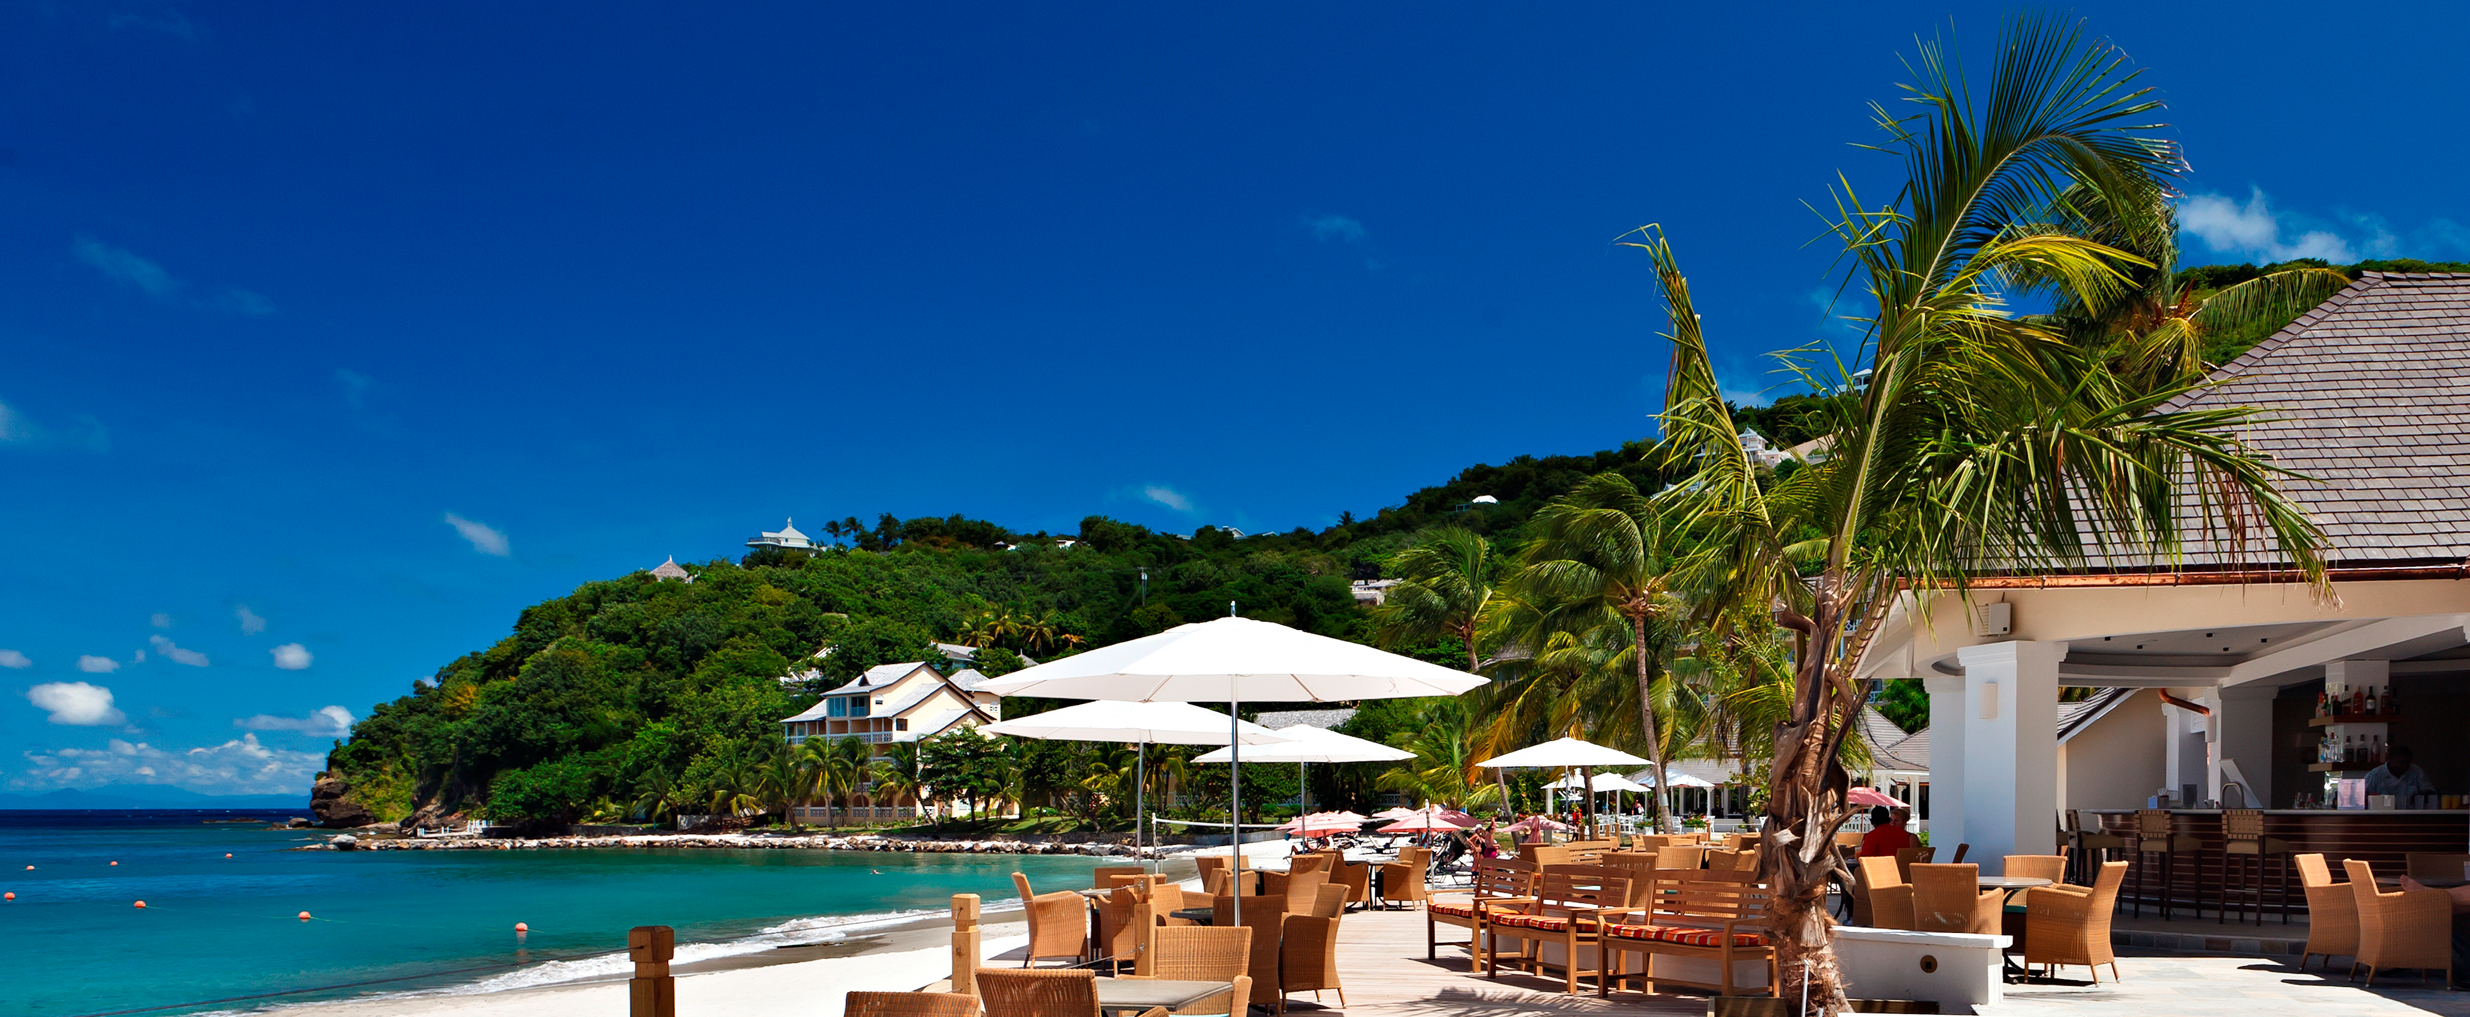 St Lucia Accommodation  St lucia Cheap caribbean Luxury